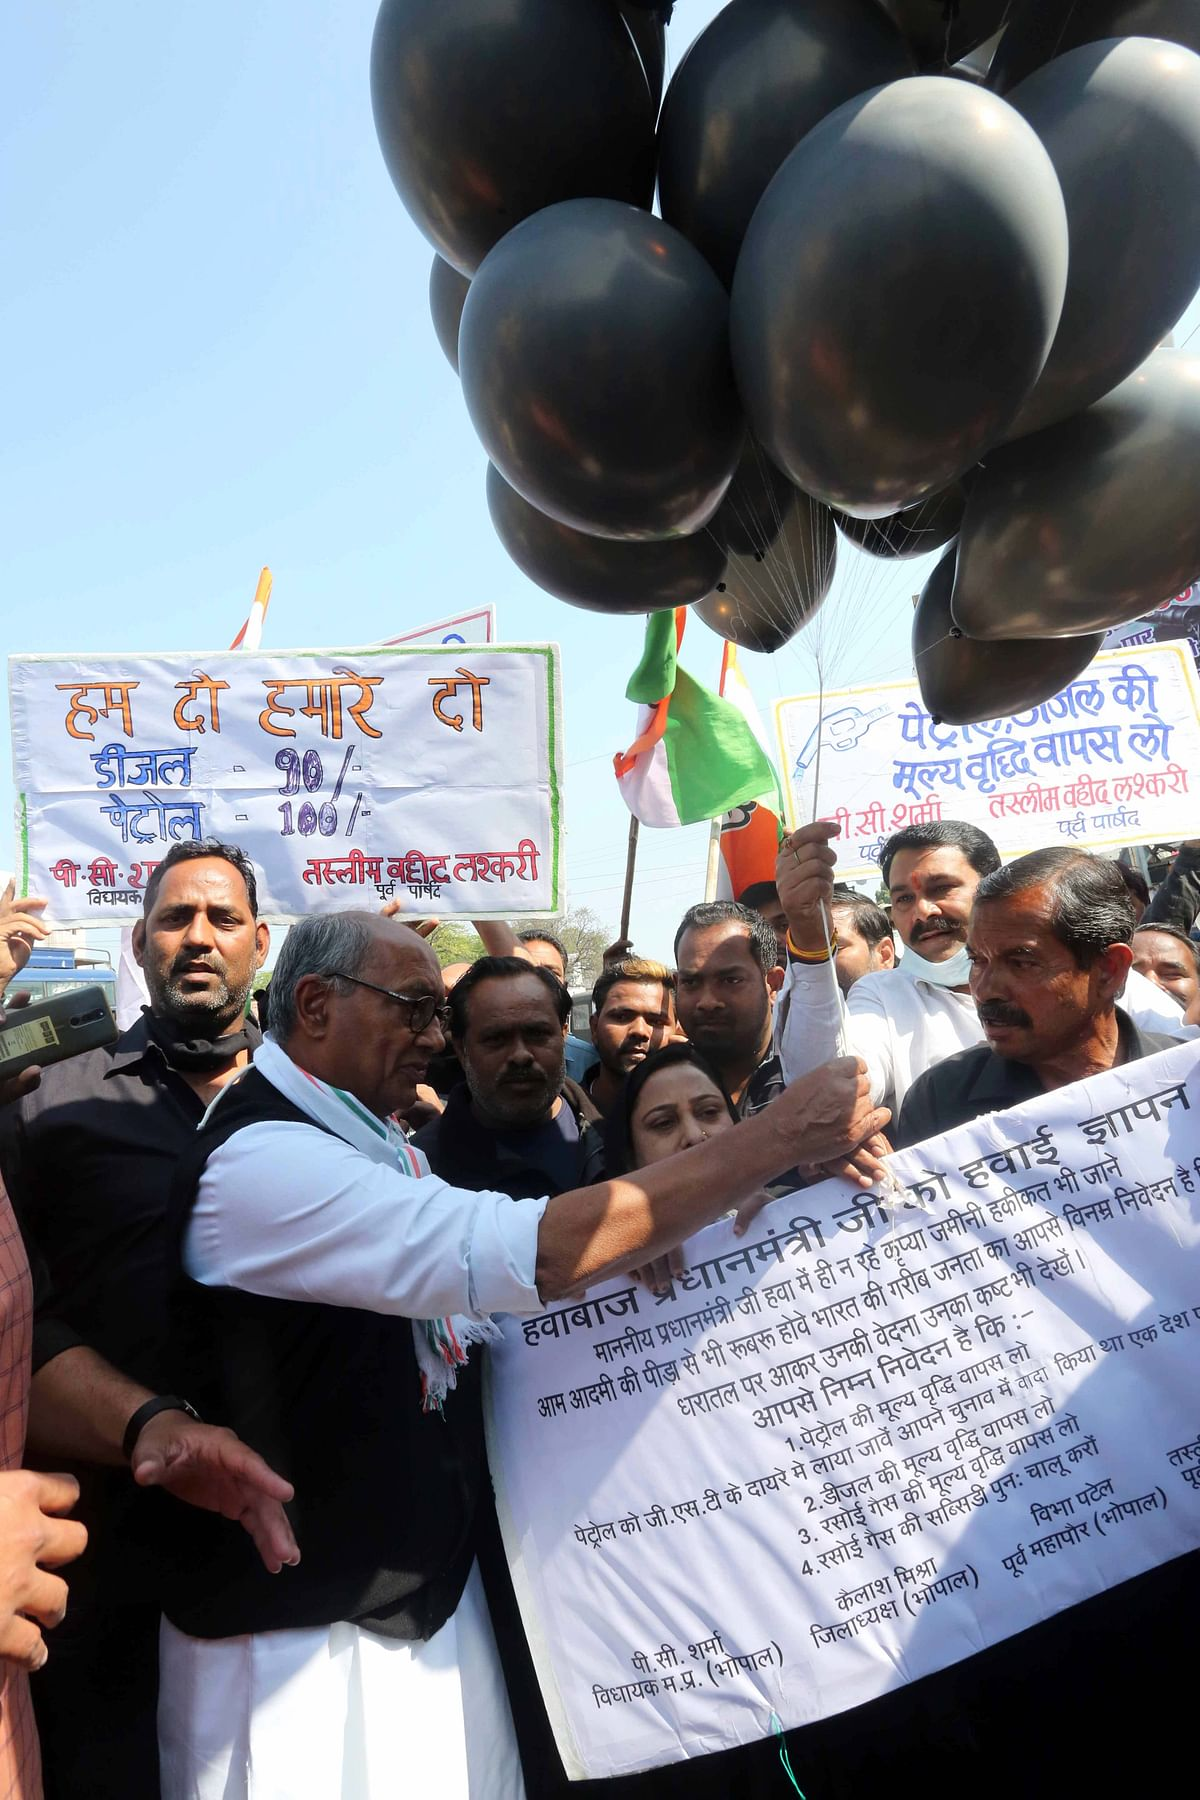 Congress leader Digvijaya Singh releases black balloons in Bhopal with memorandum addressed to PM Narendra Modi over the price hike in petrol, diesel and LPG during the bandh called on Saturday.